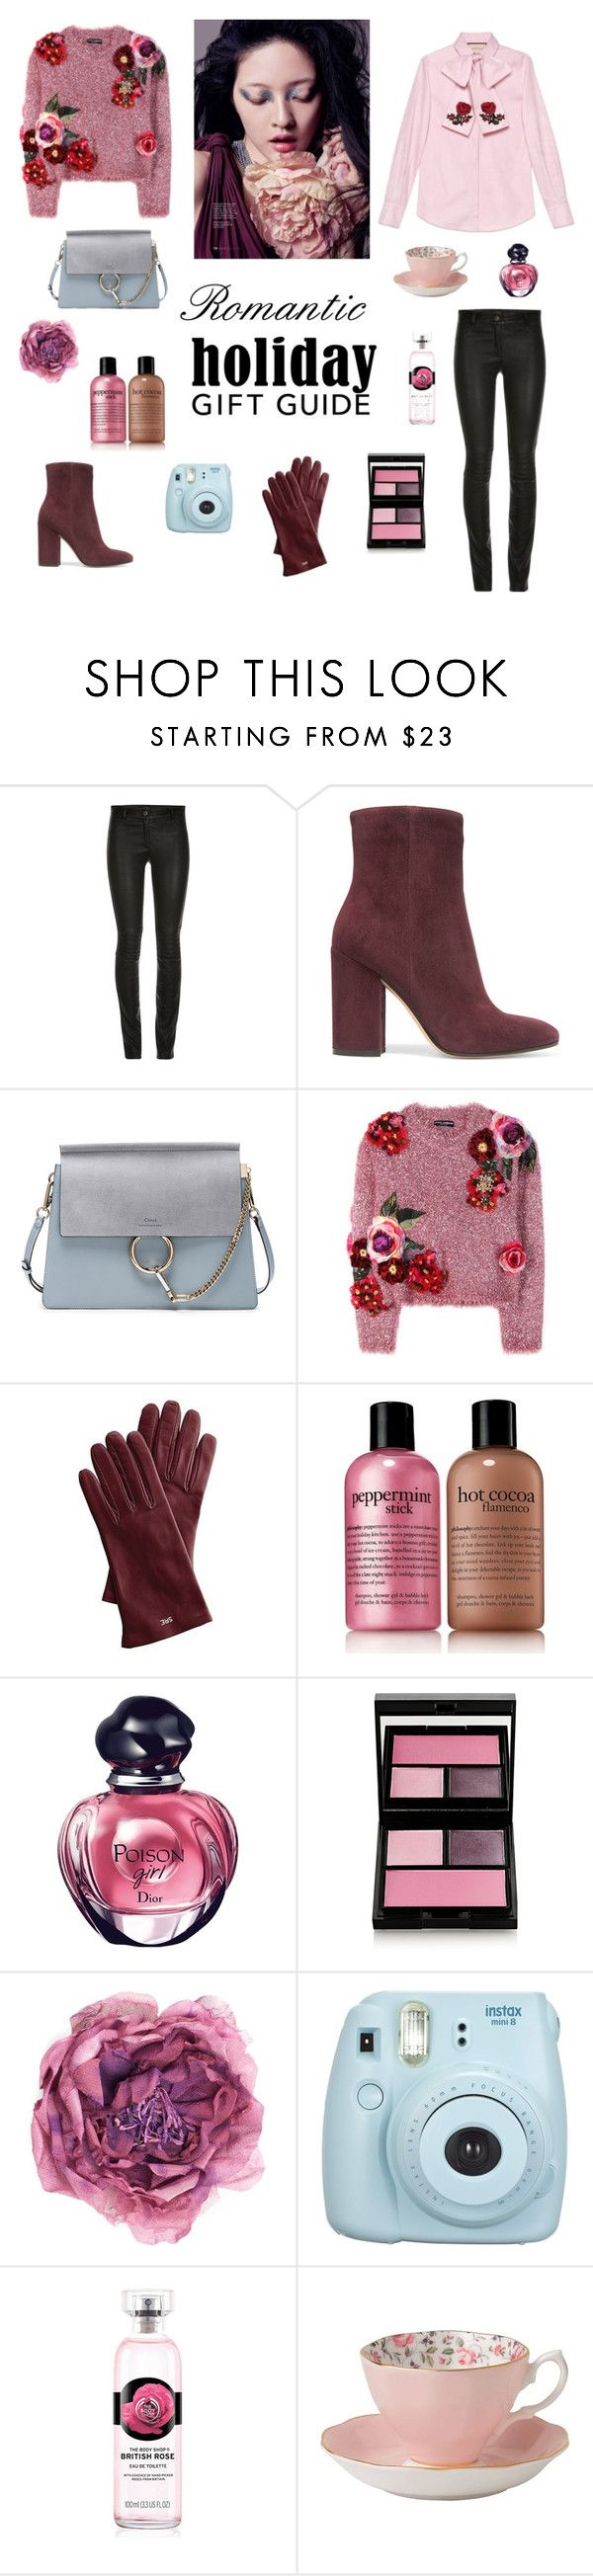 """Romantic gift guide💕"" by dorey on Polyvore featuring ElleSD, Gianvito Rossi, Chloé, Dolce&Gabbana, Mark & Graham, philosophy, Christian Dior, Surratt, Gucci and Fujifilm"